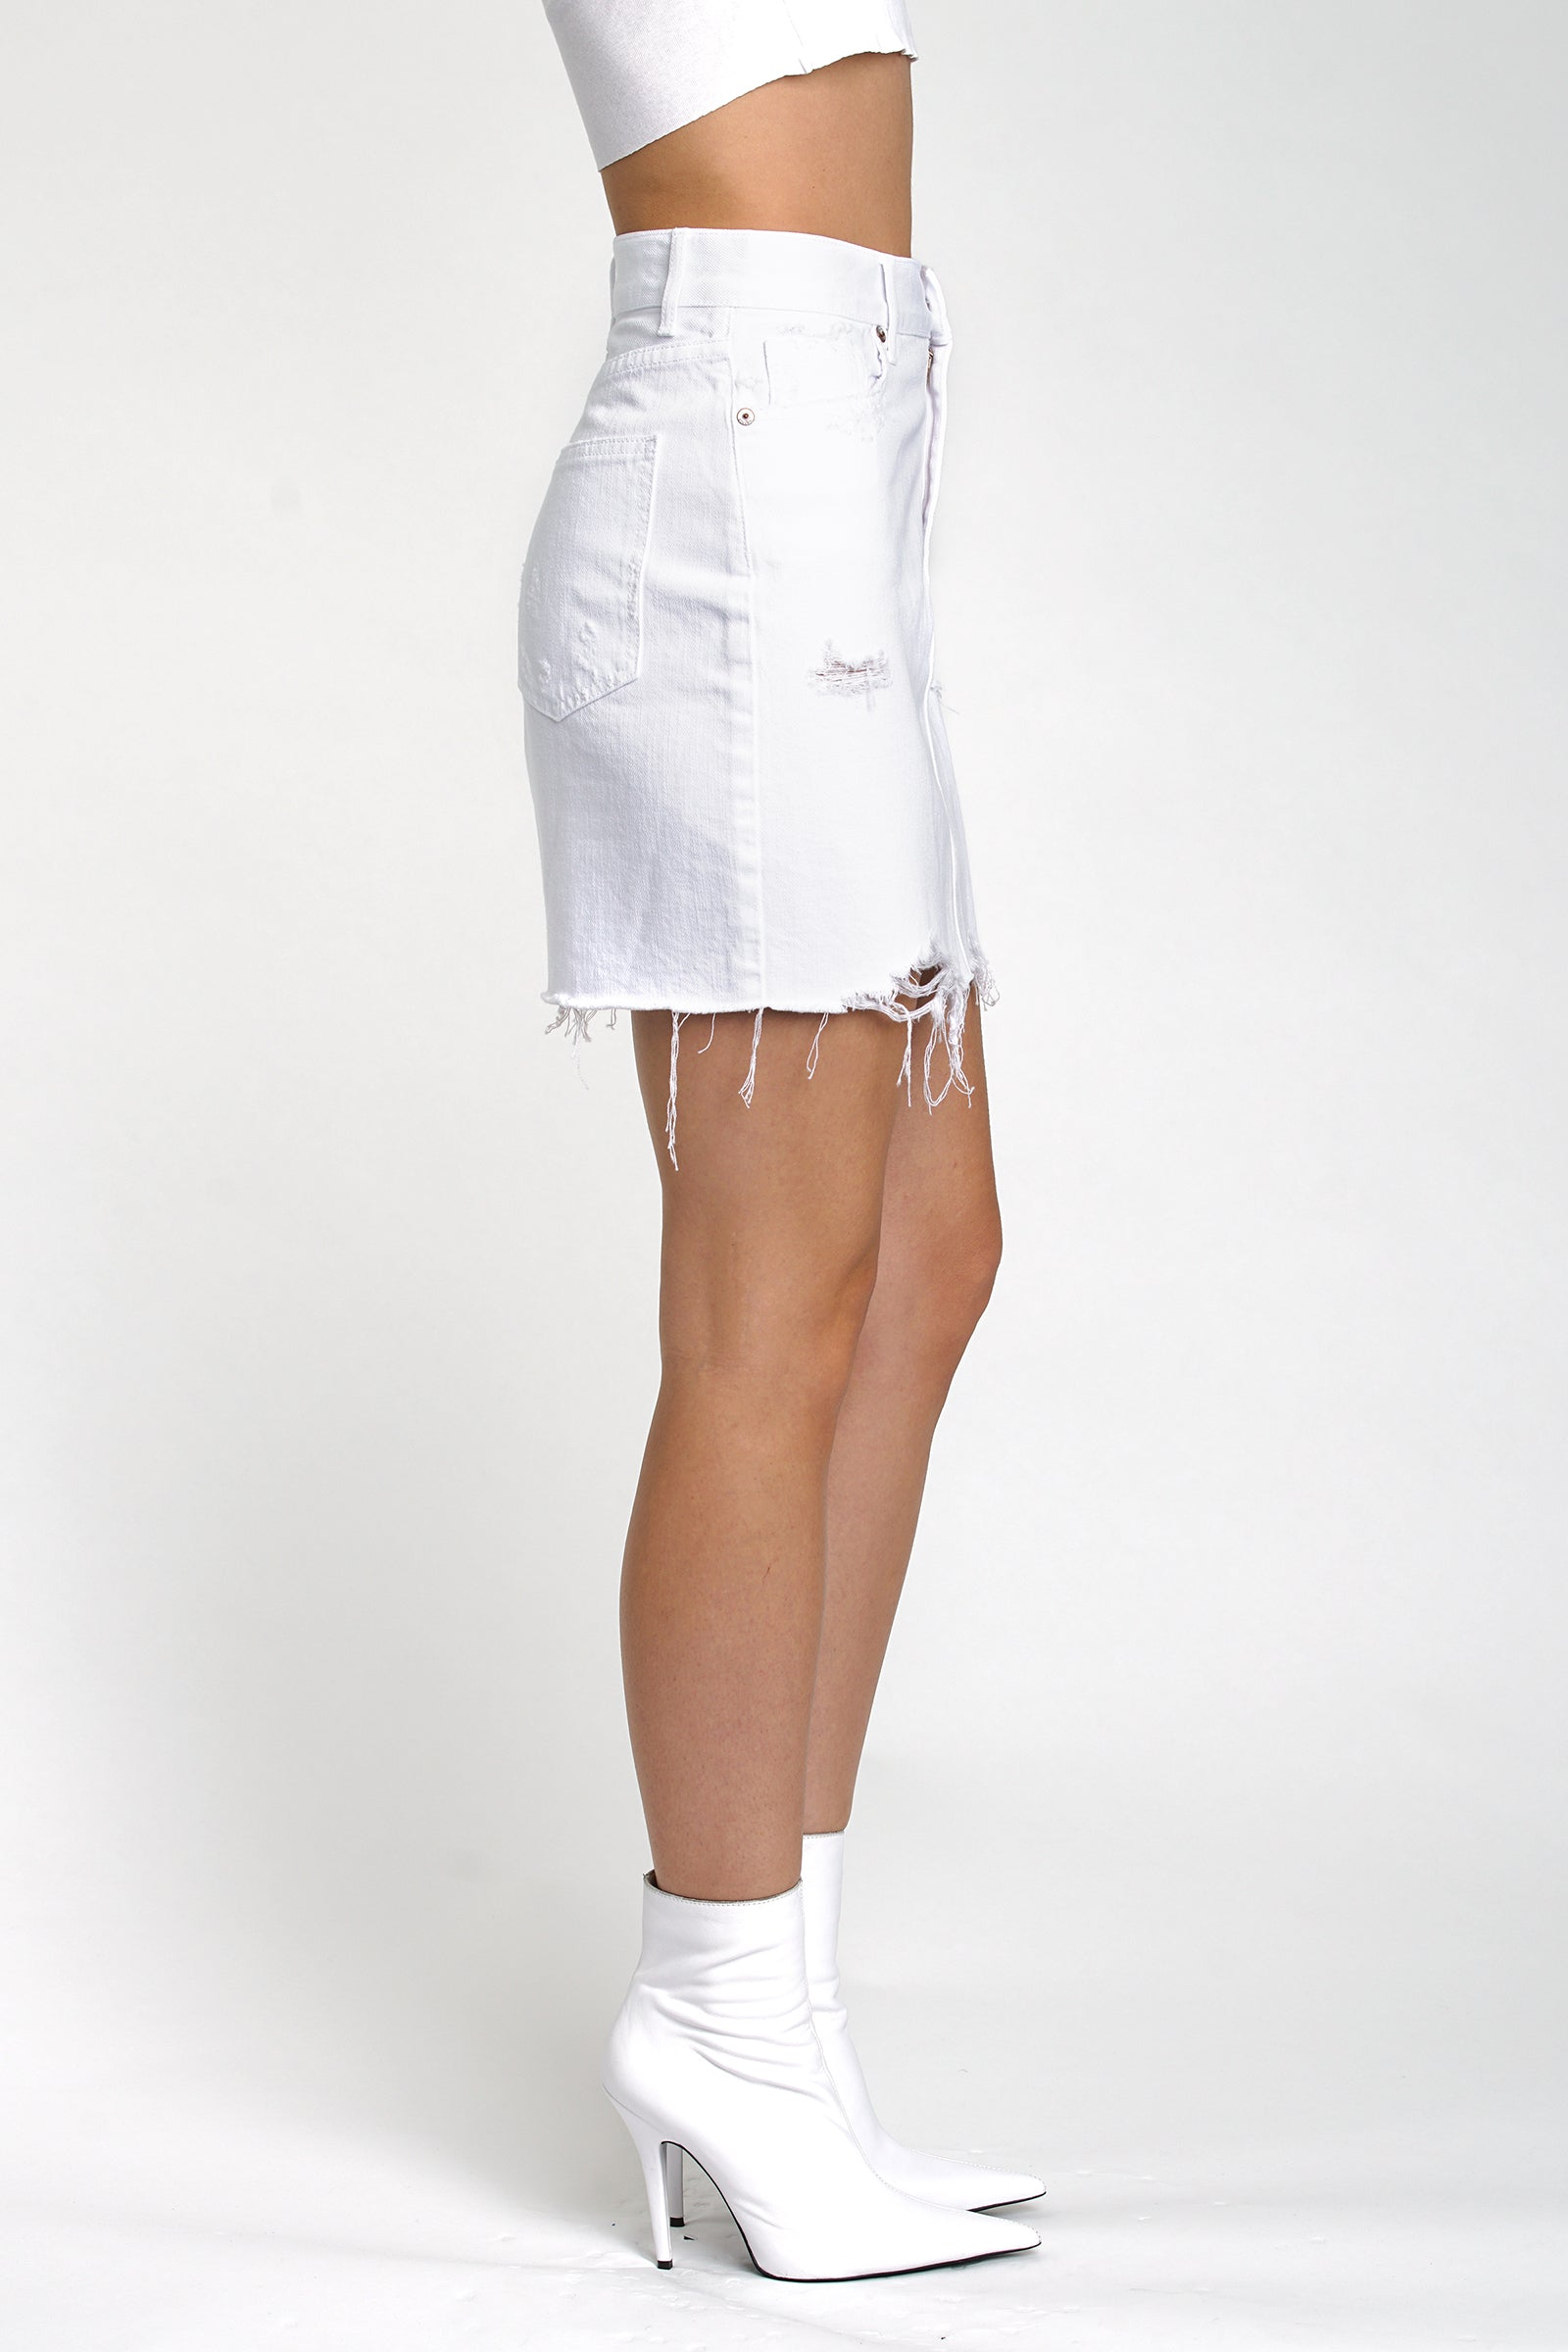 Sierra High Rise Pencil Skirt - Ice Breaker